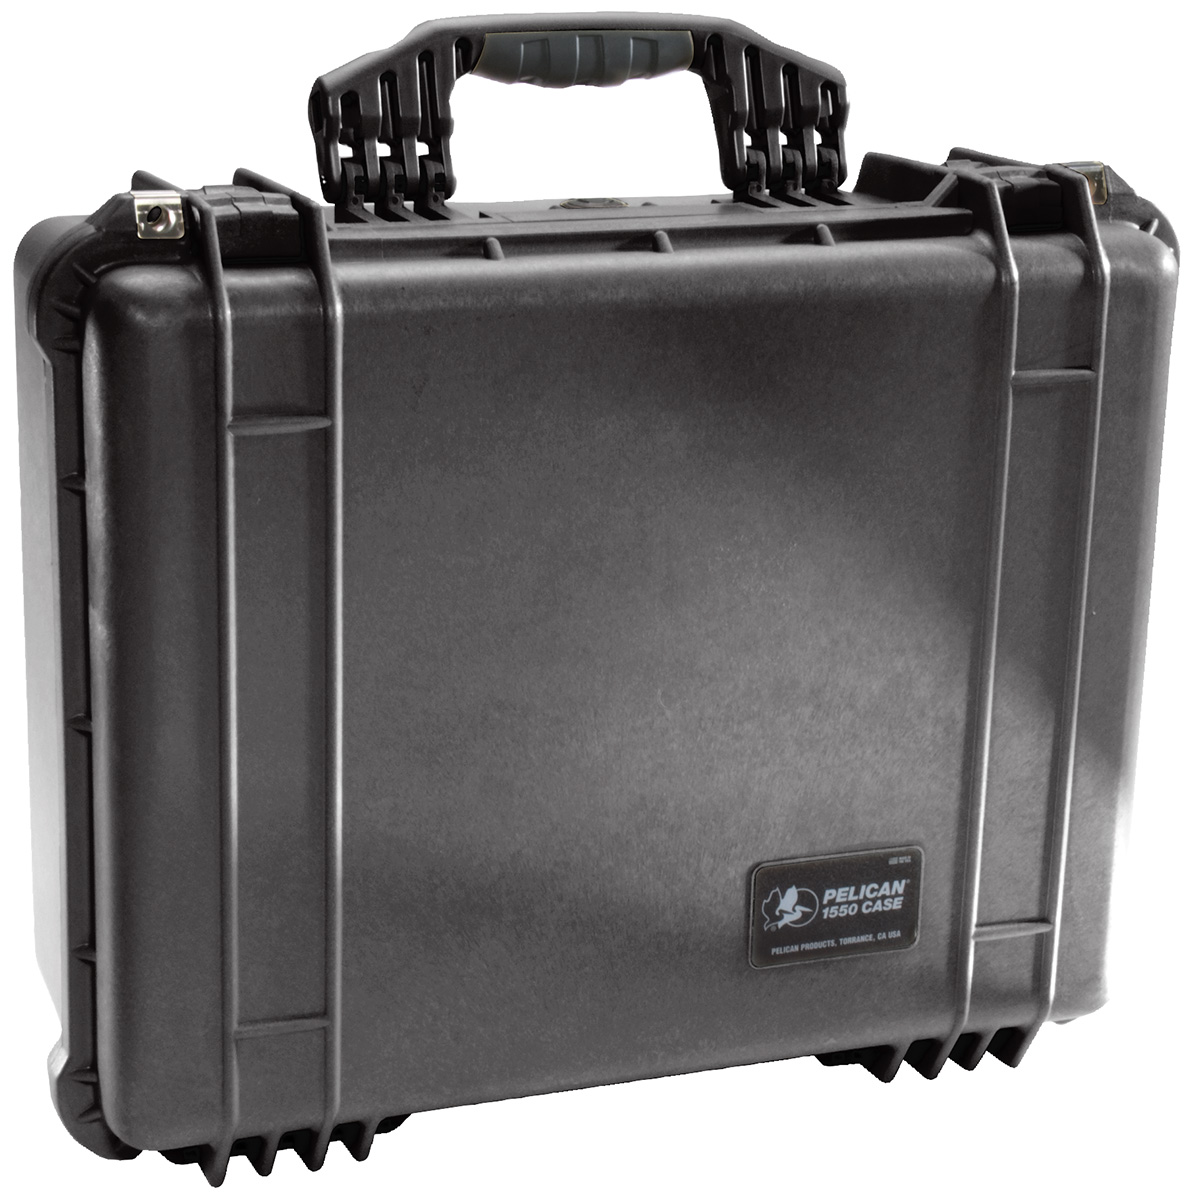 pelican peli products 1550 hard shell dustproof tactical case